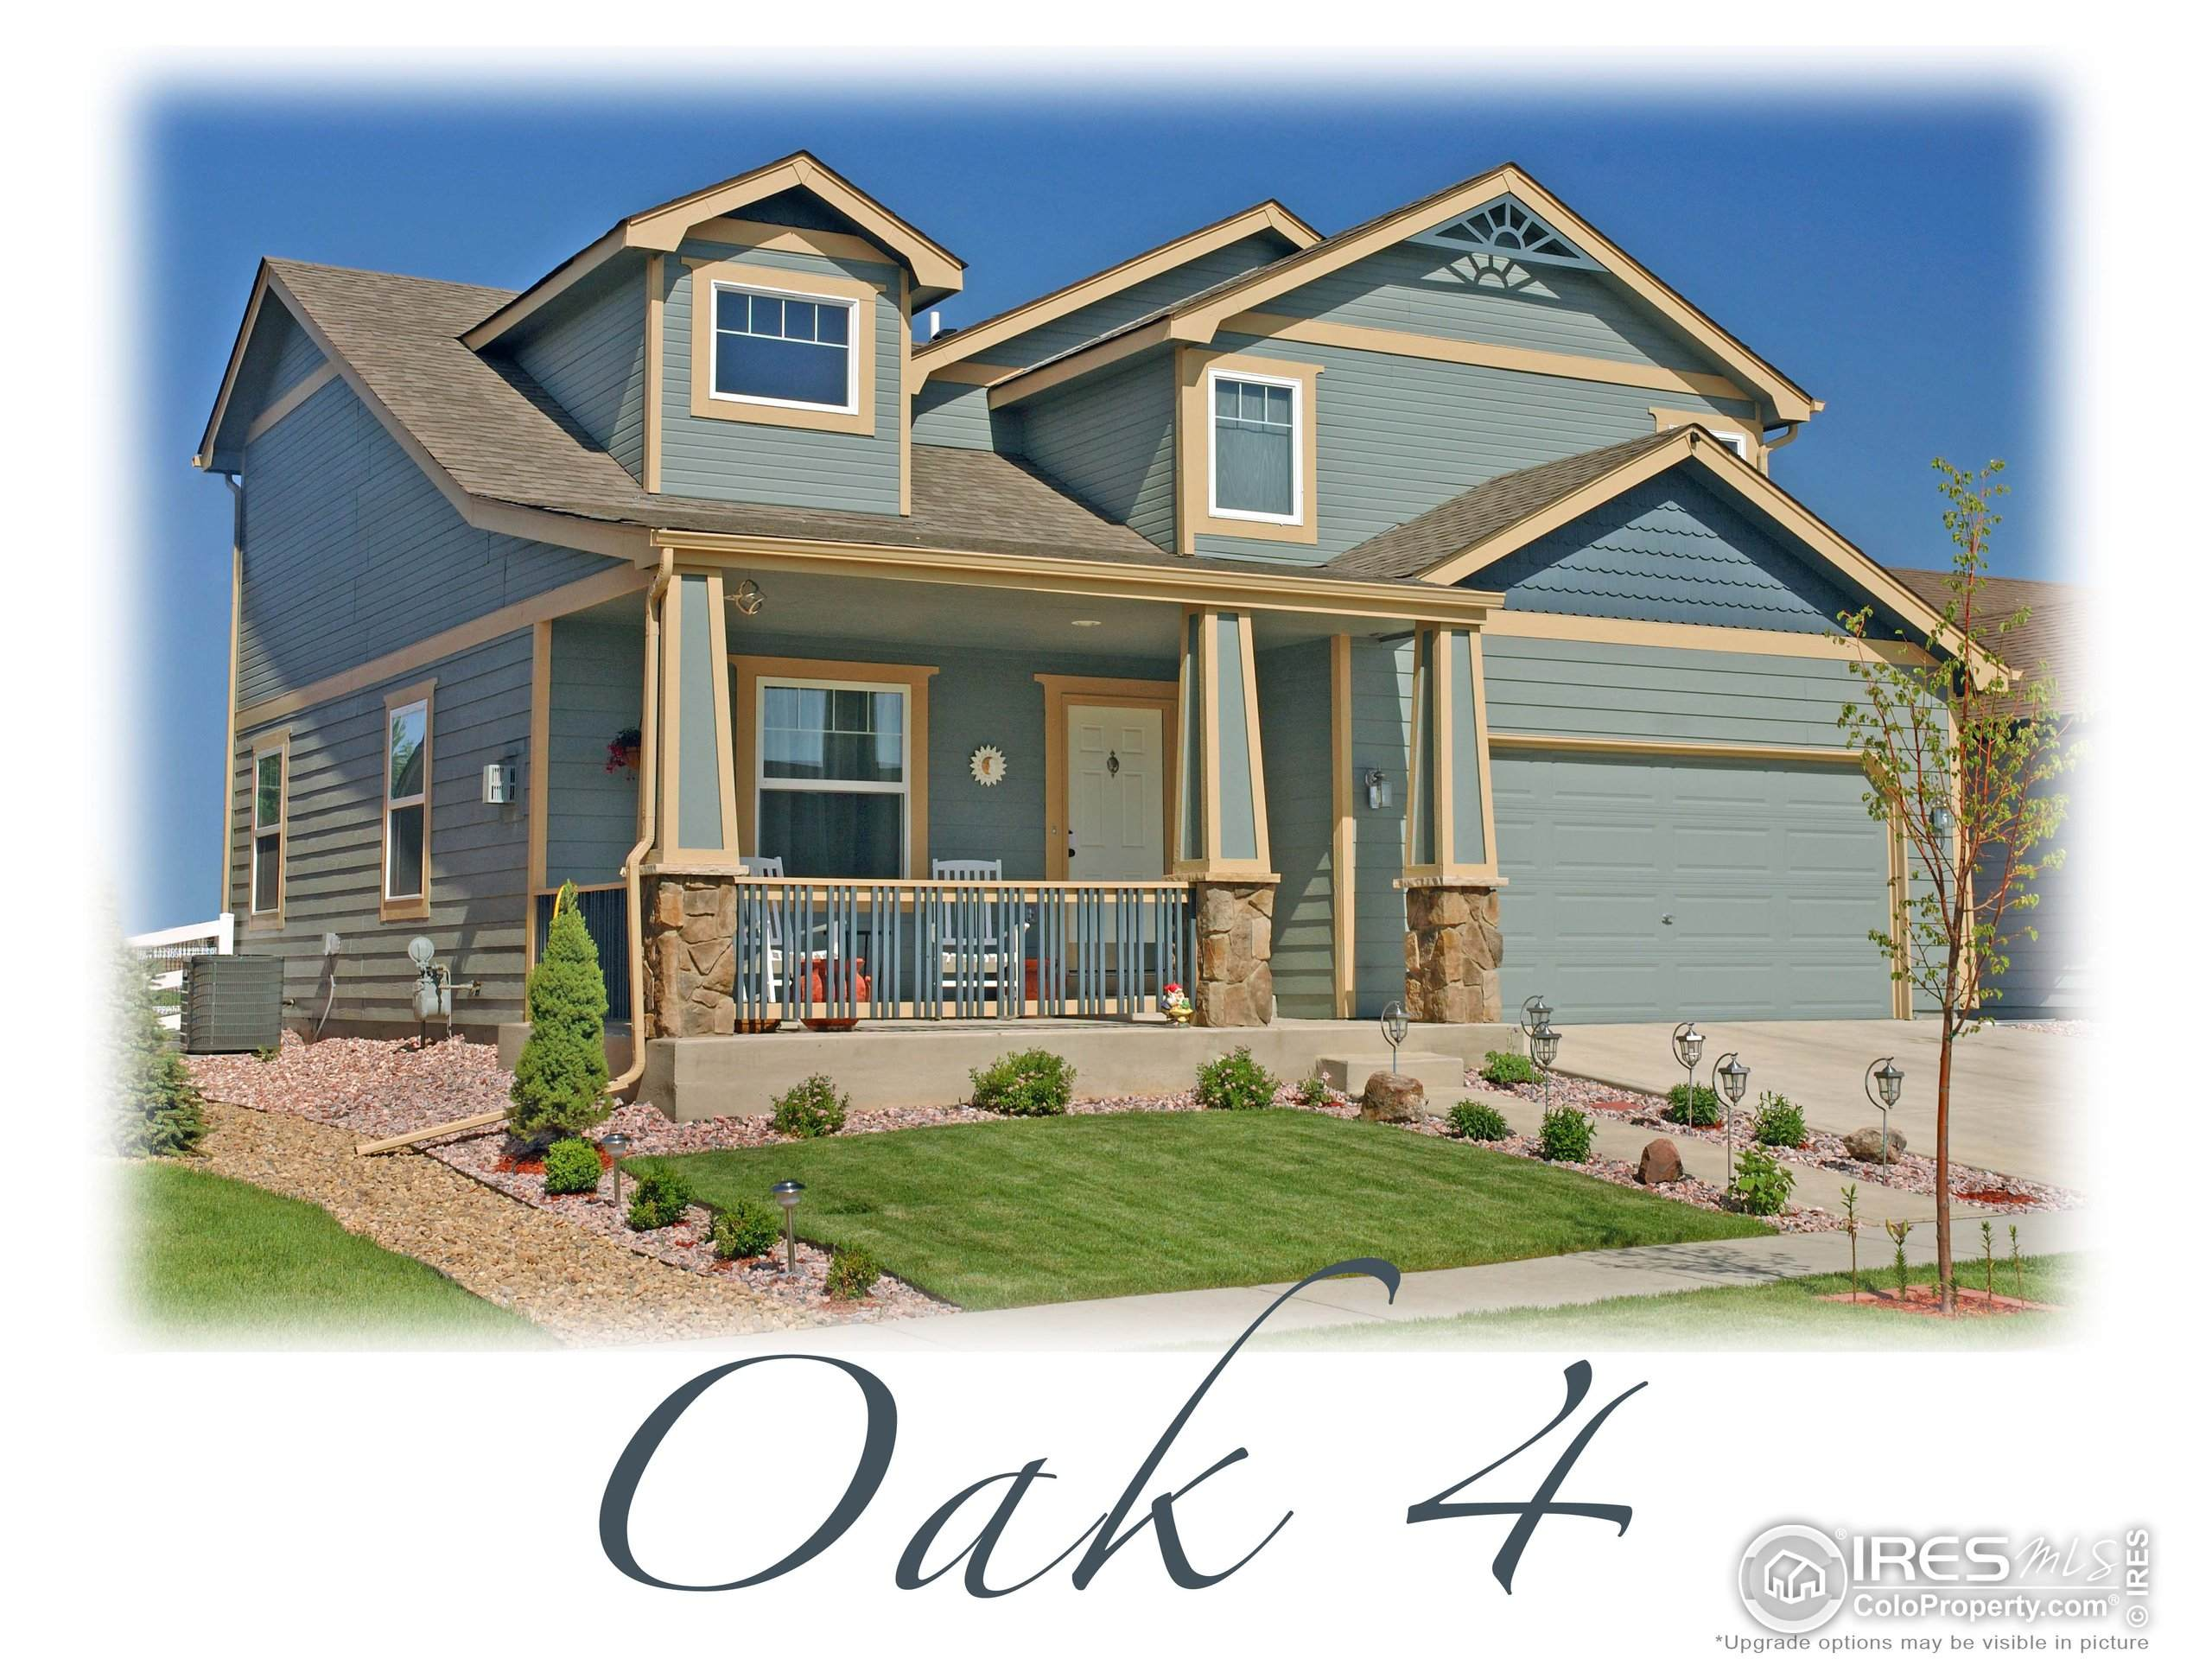 4110 30th St, Greeley, CO 80634 (MLS #942739) :: RE/MAX Alliance